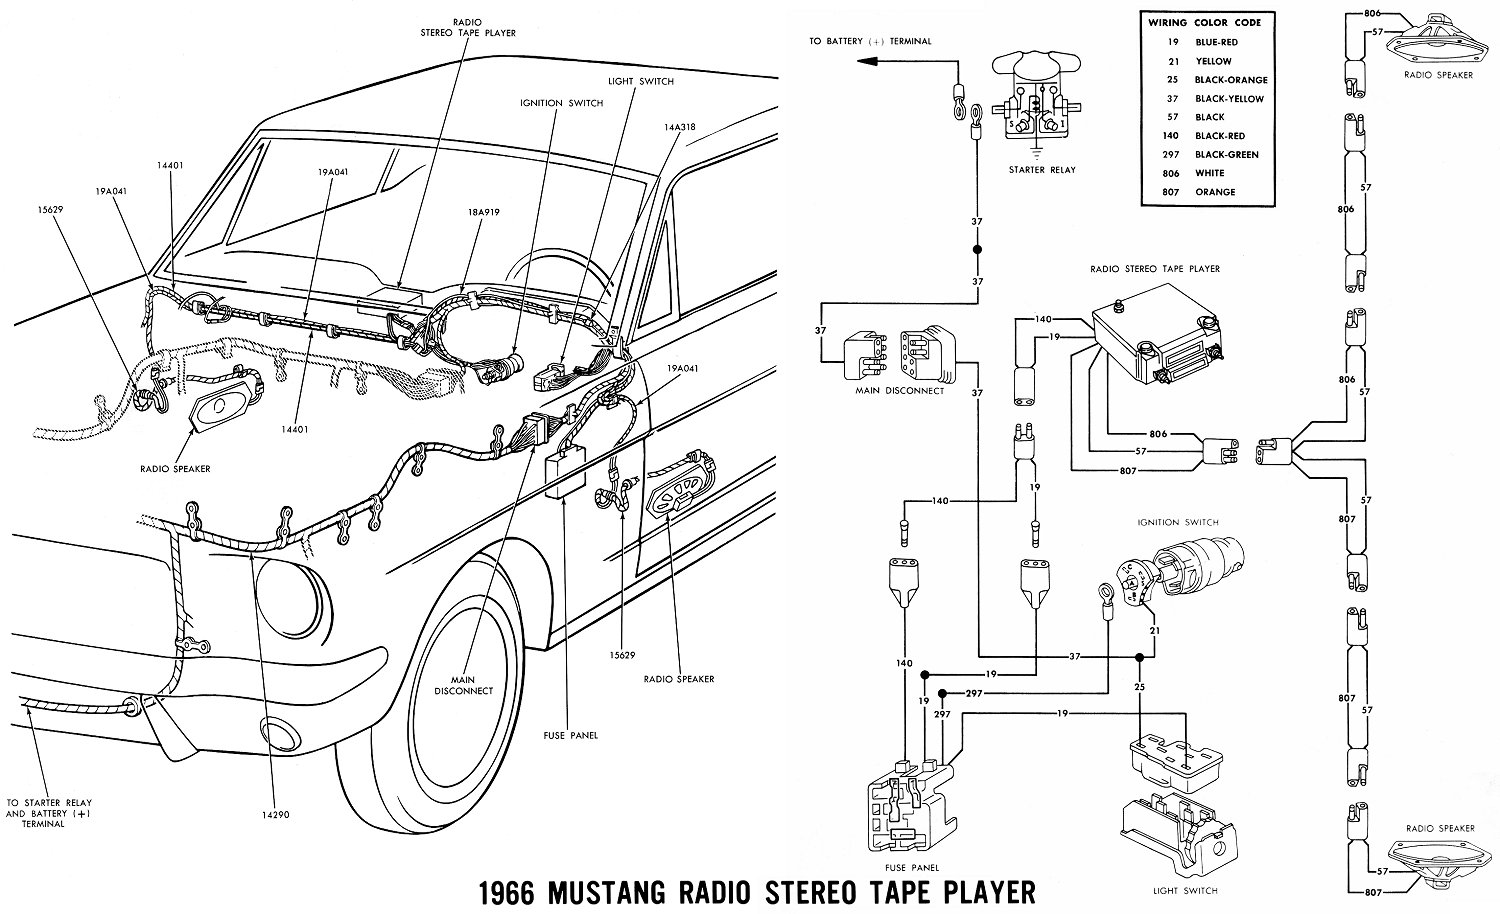 1966 Mustang Wiring Diagrams Average Joe Restoration Alternator Connection Diagram Sm66ste